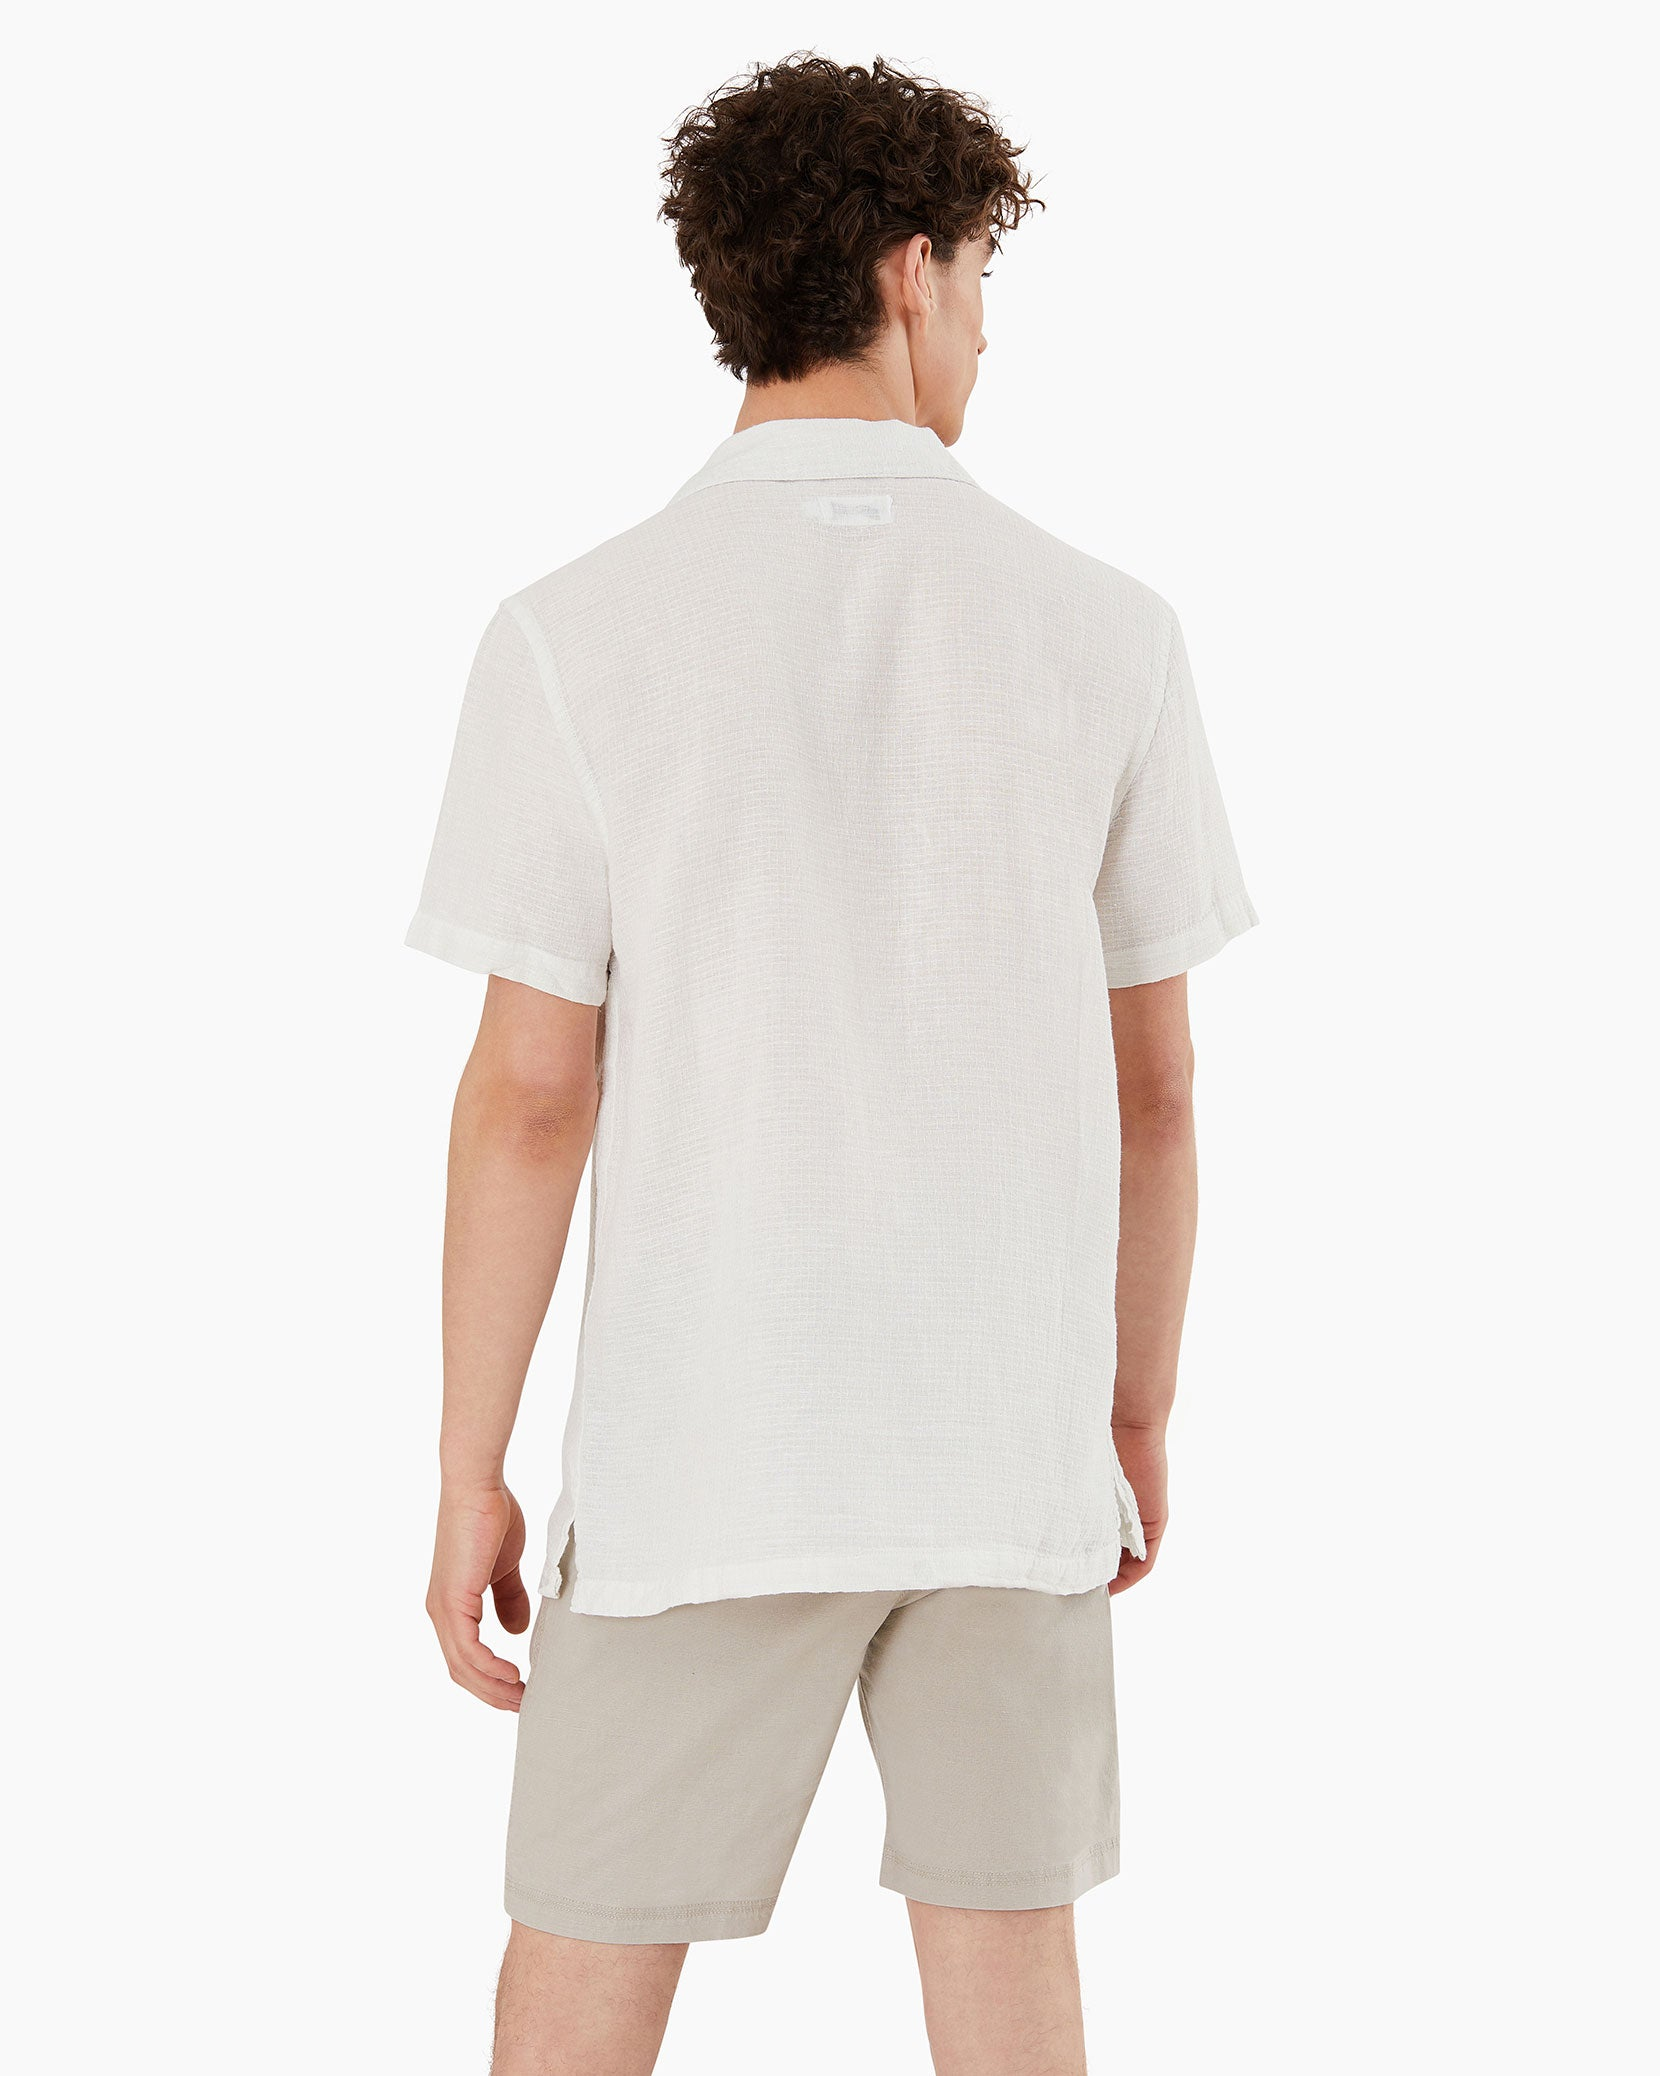 Vacation Checked Dobby Shirt in White - 4 - Onia